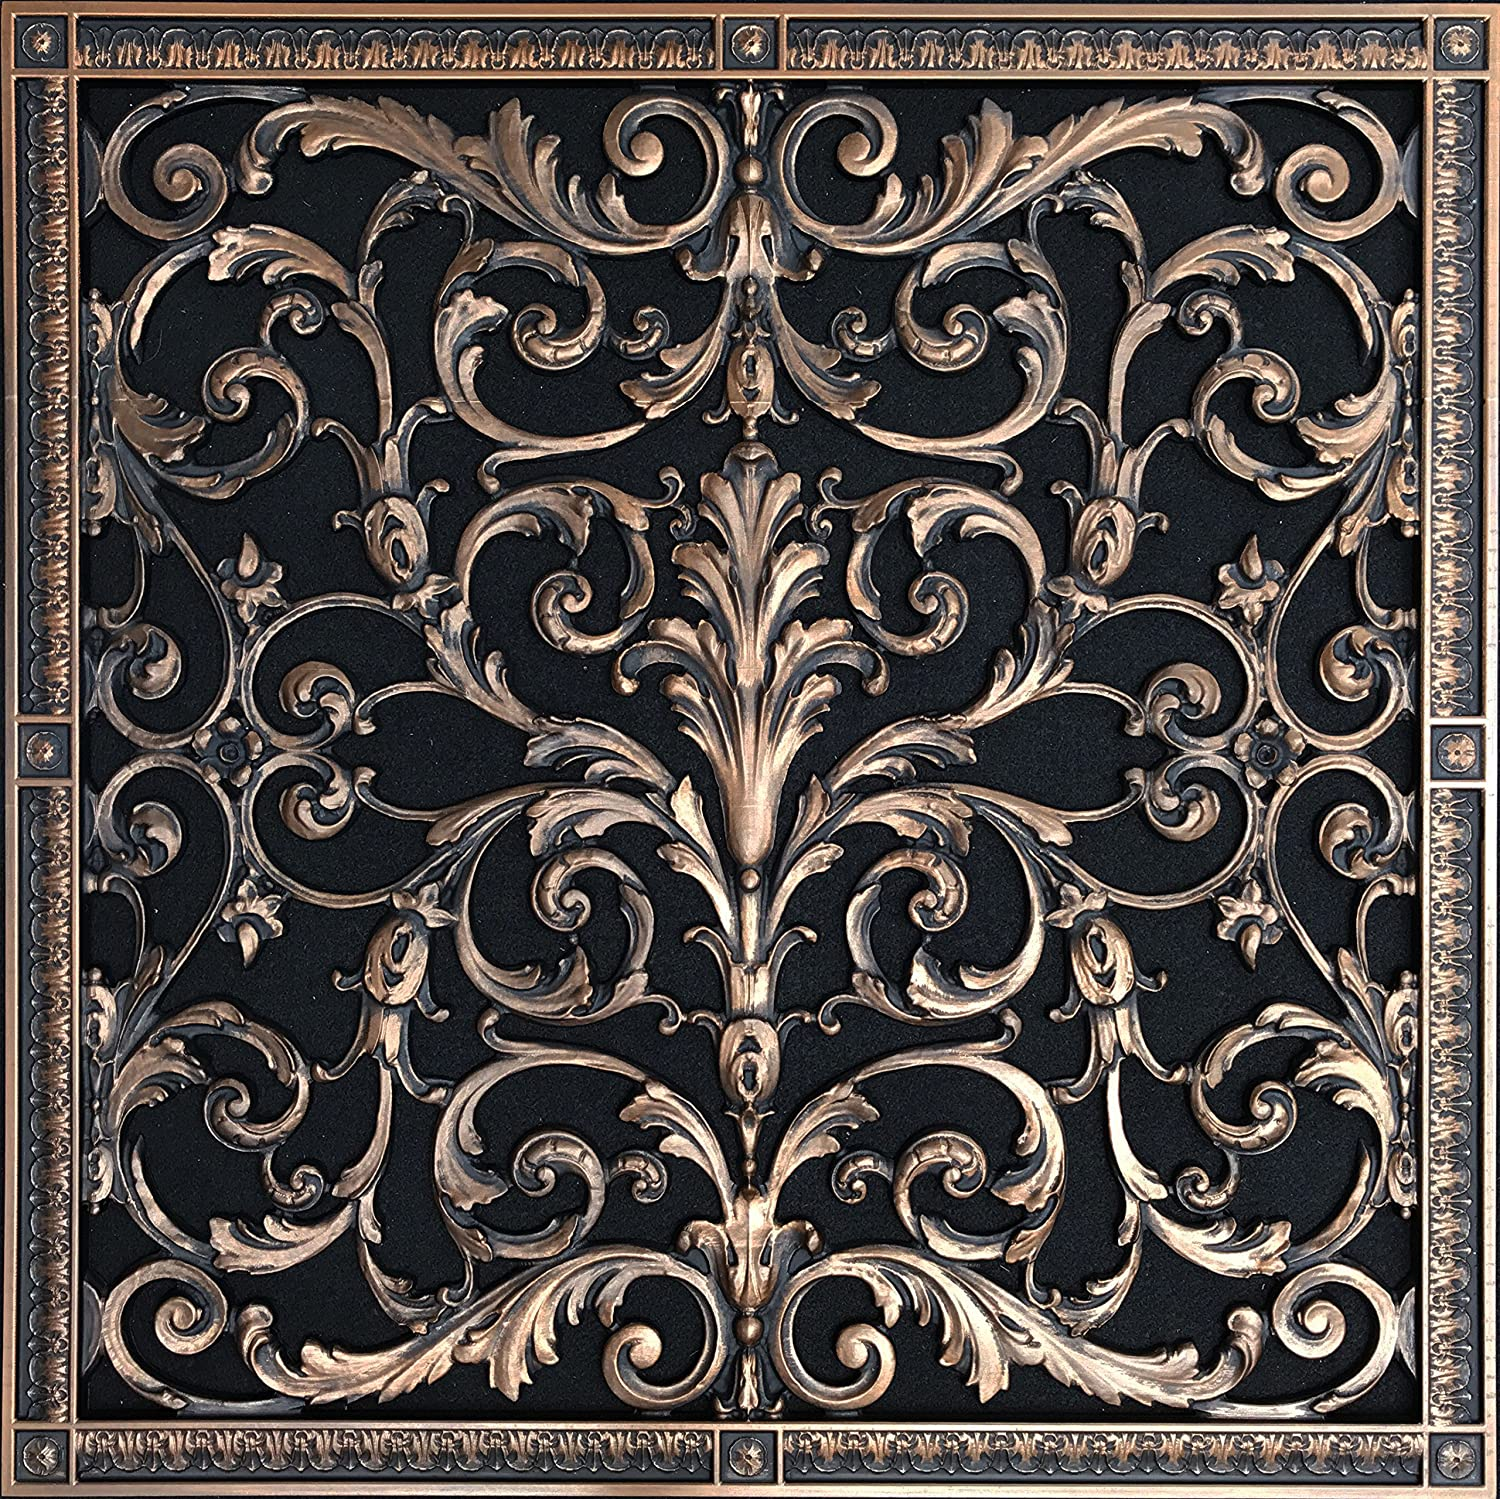 """Decorative Vent Cover, Grille, Return Register, made of Urethane Resin, in  French style fits over a 20""""x 20"""" duct opening  Total size, 22"""" by 22"""","""